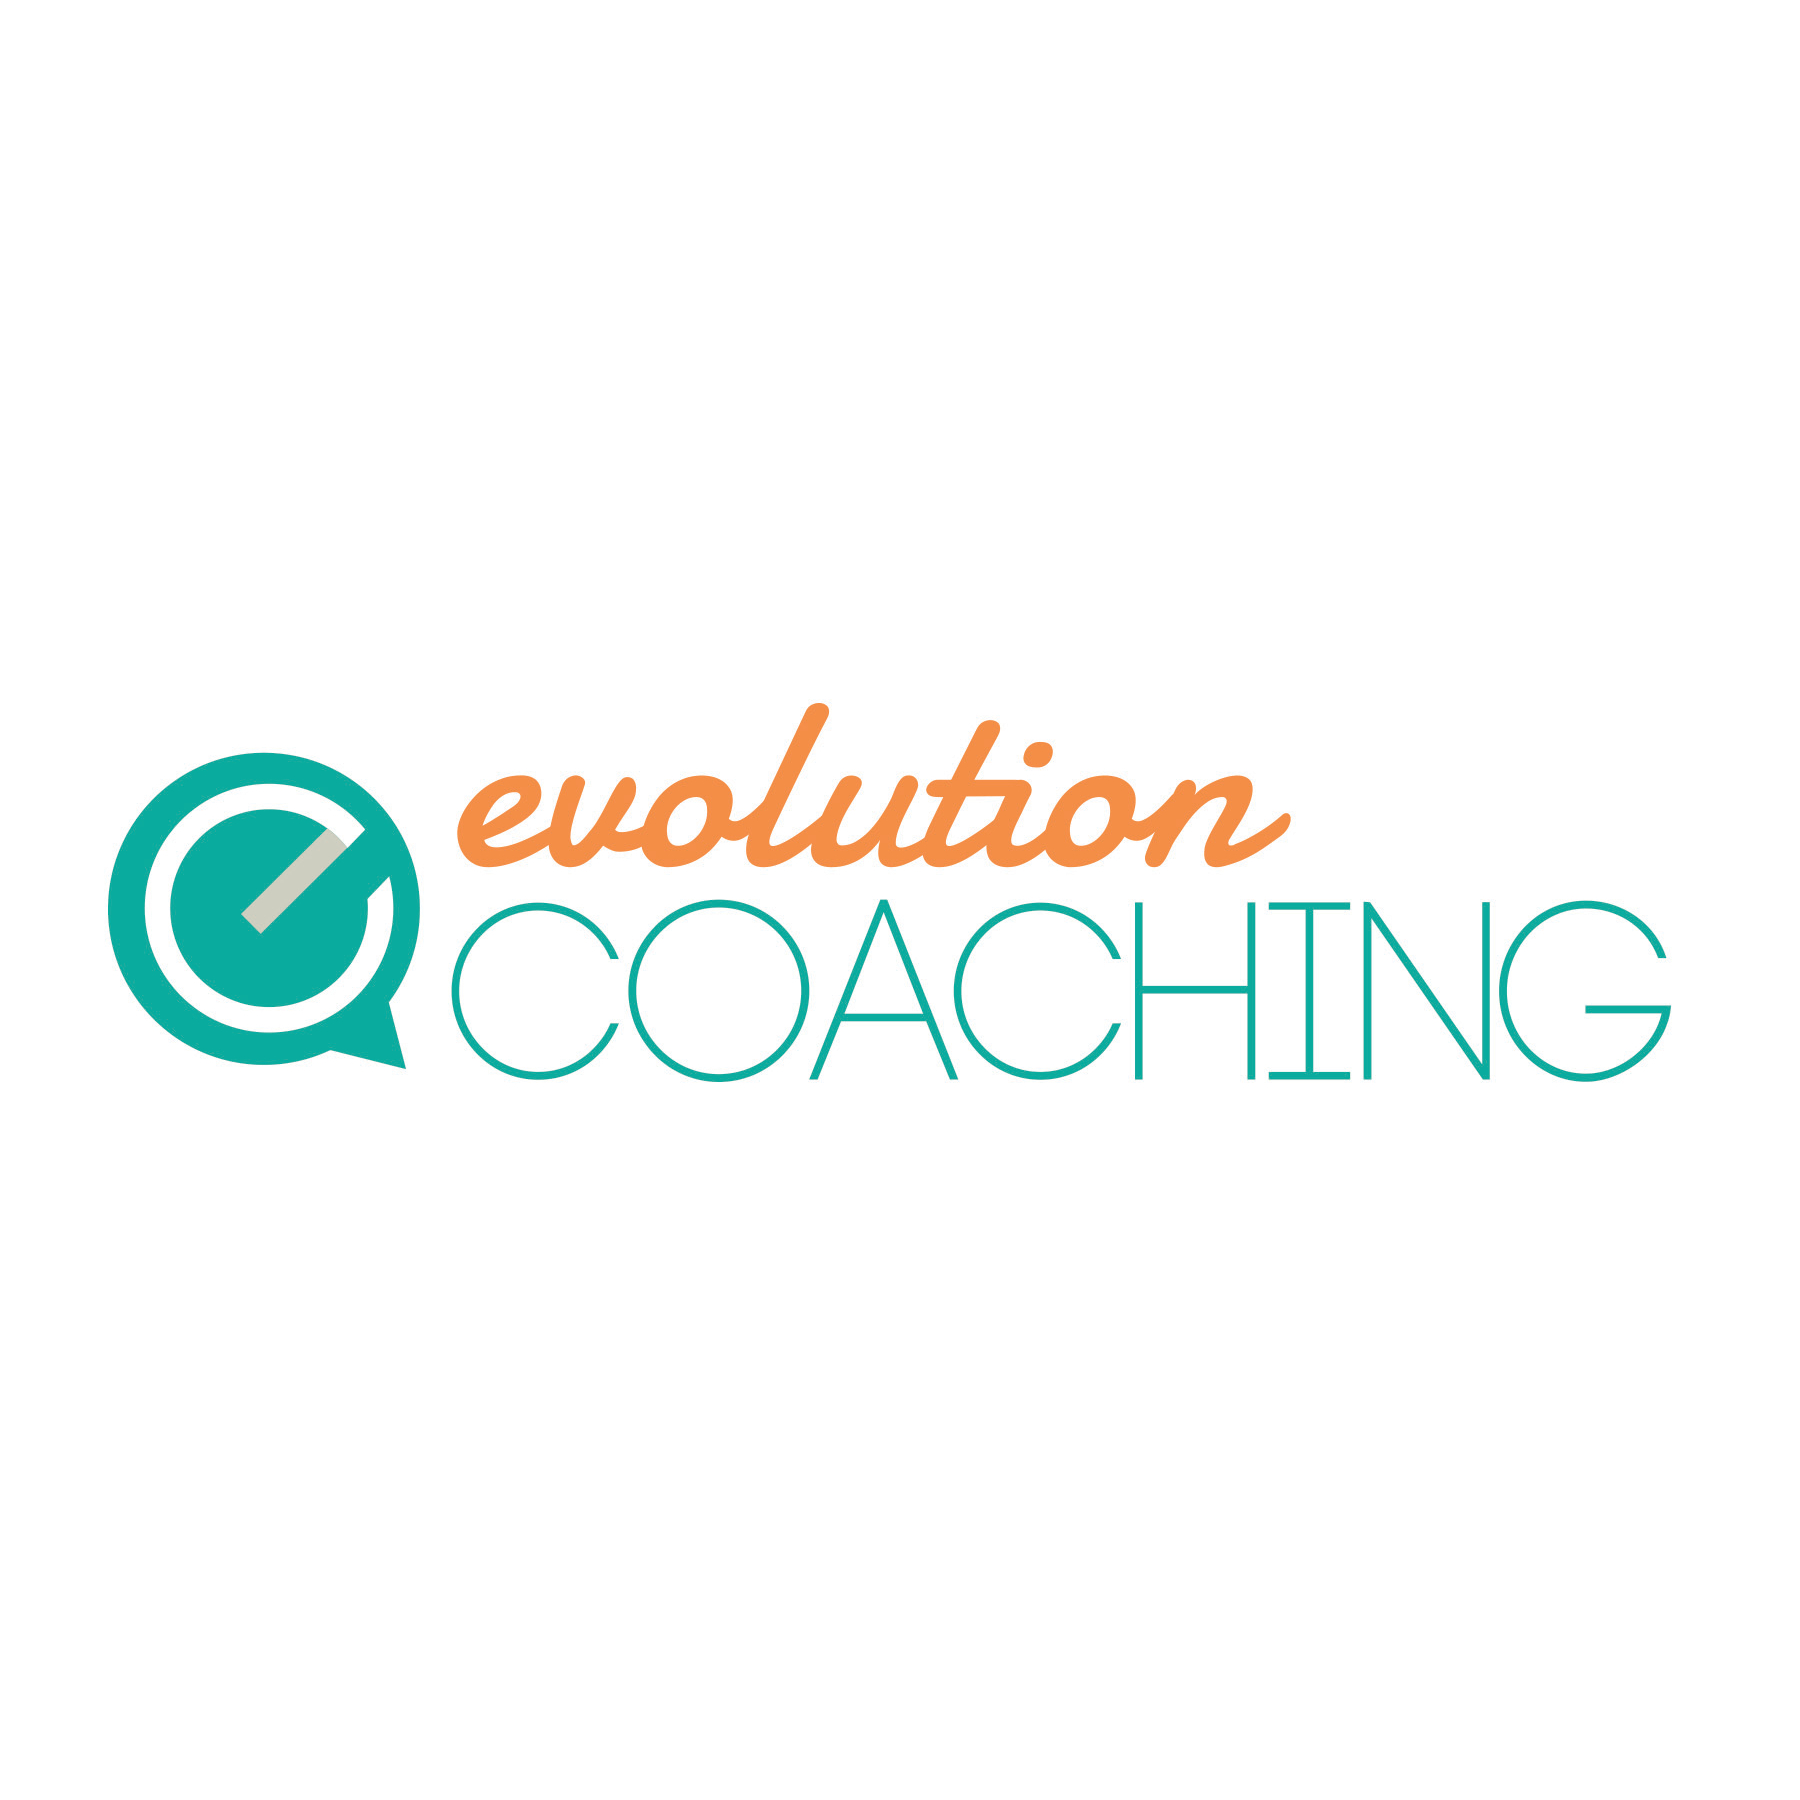 Evolution Coaching, LLC